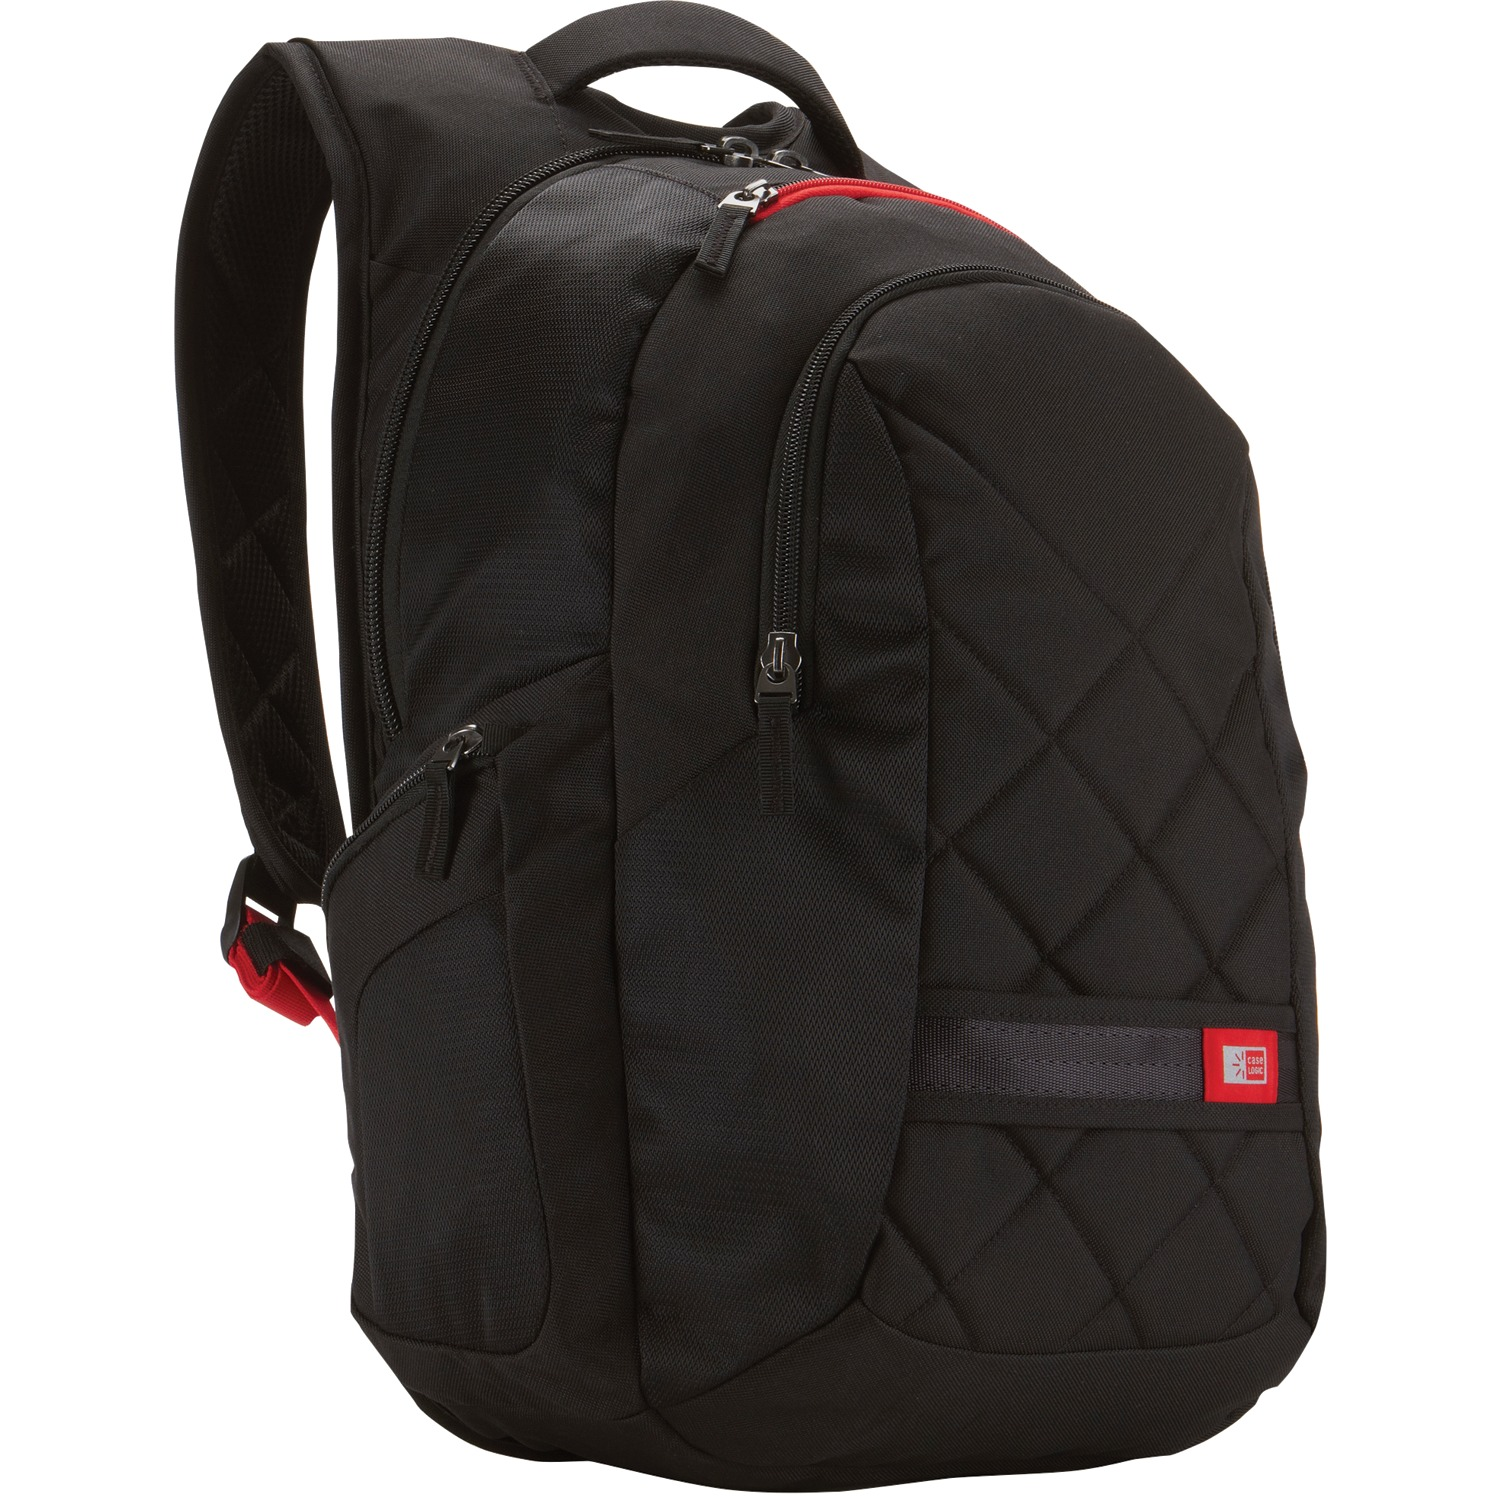 "Case Logic 3201268 16"" Diamond Laptop Backpack"